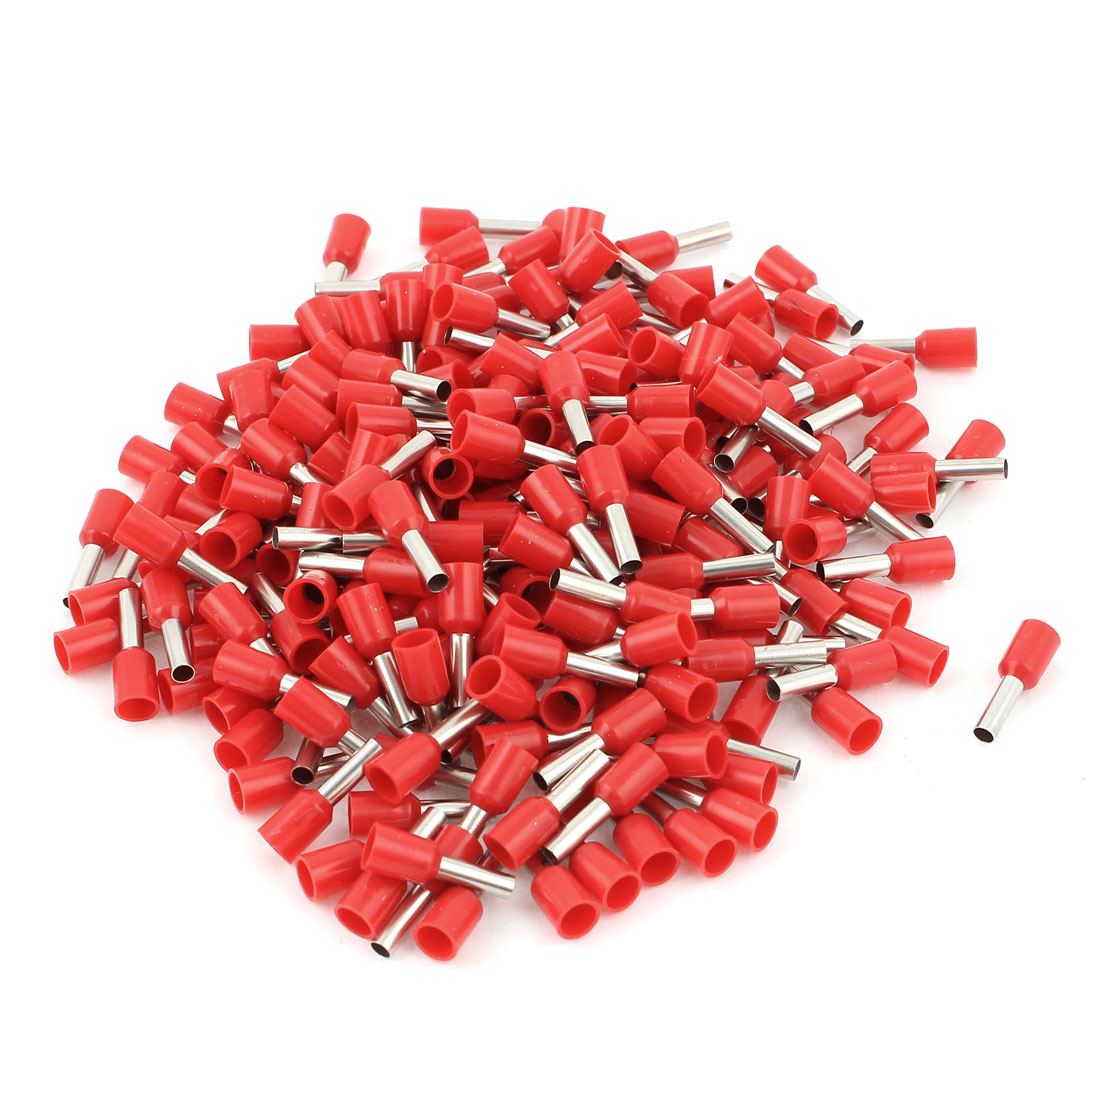 240 Pcs Red Copper Wire Crimp Connector Insulated Ferrule Pin Cord End Terminals AGW14